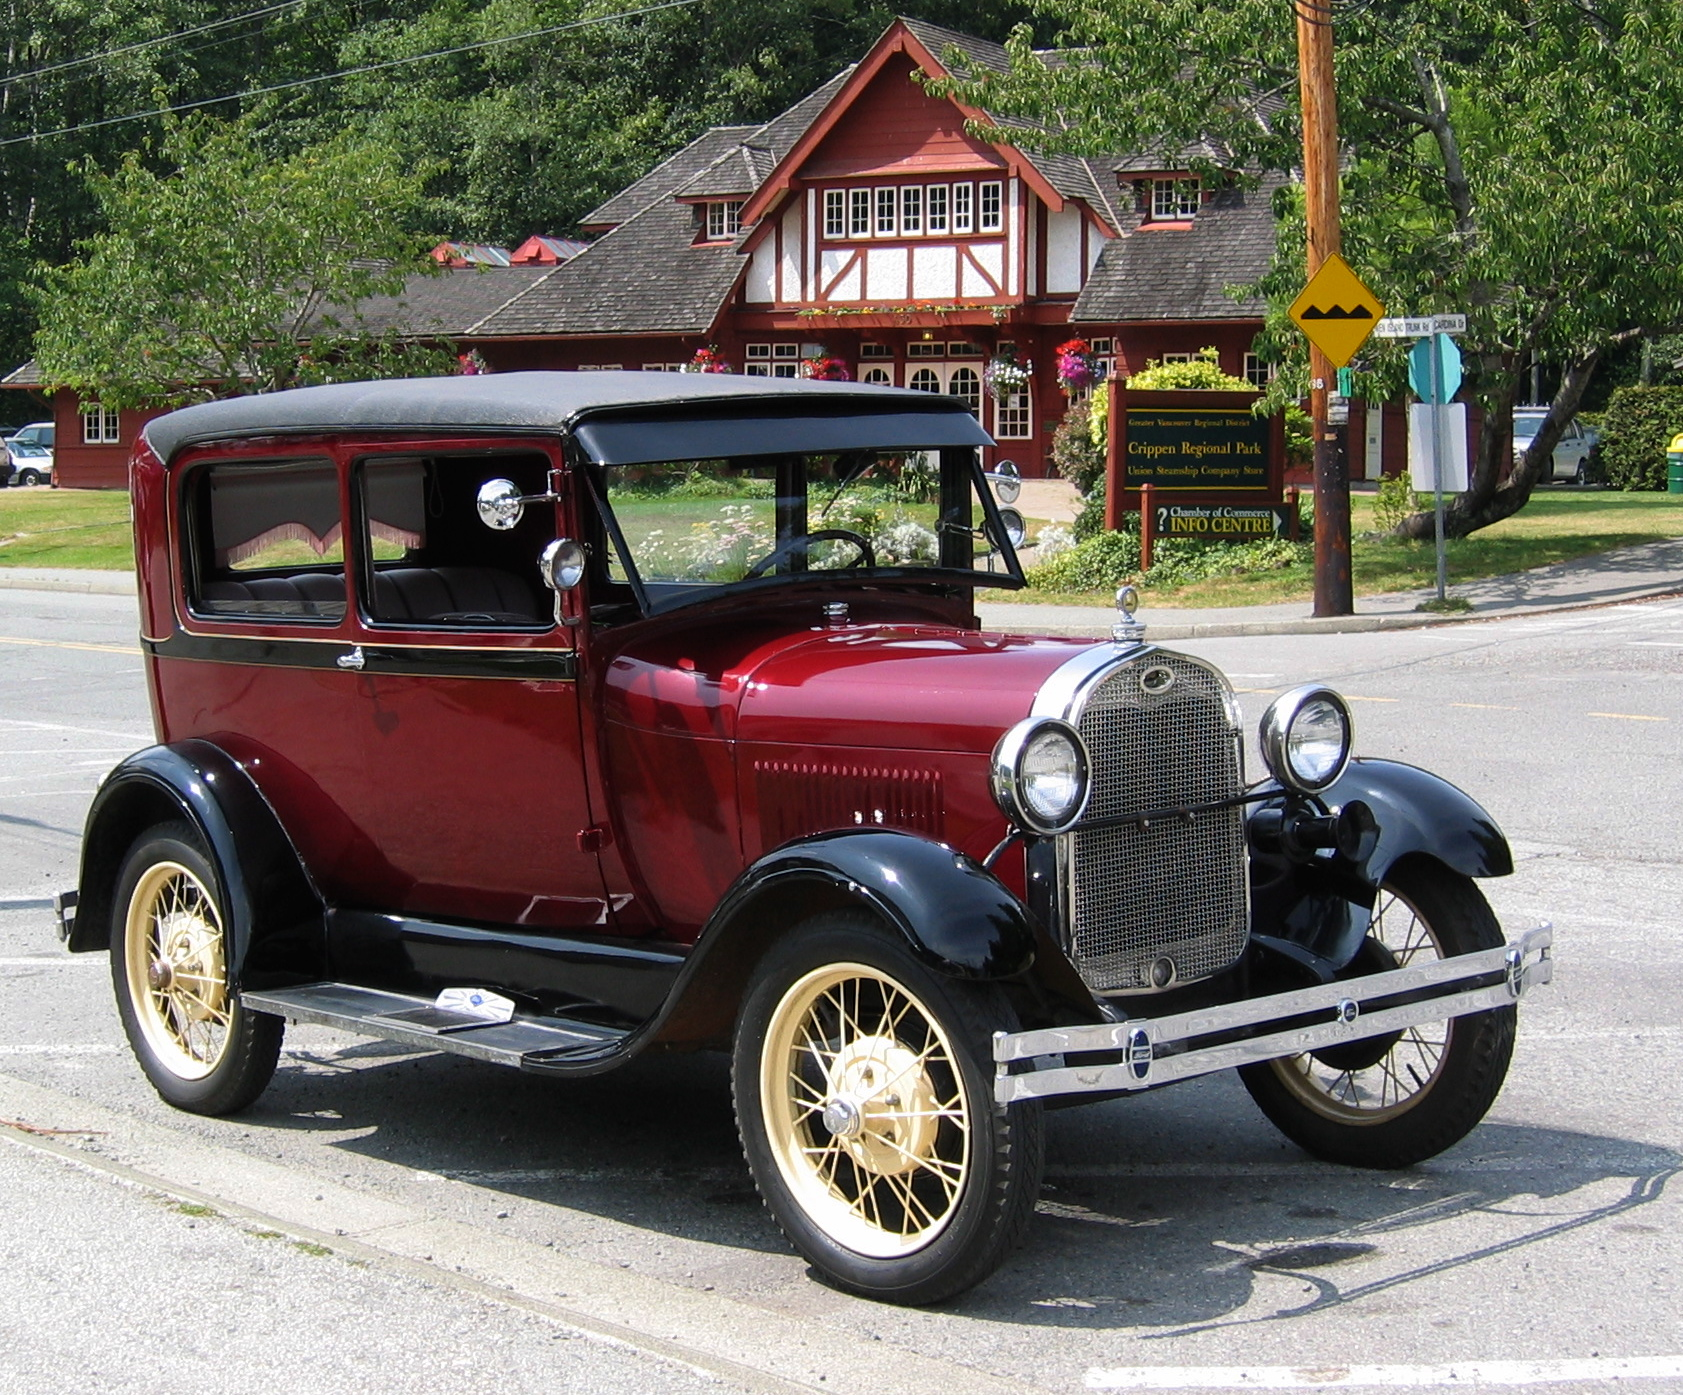 1928 ford model a tudor sedan shown for comparison note wider body and curved doors